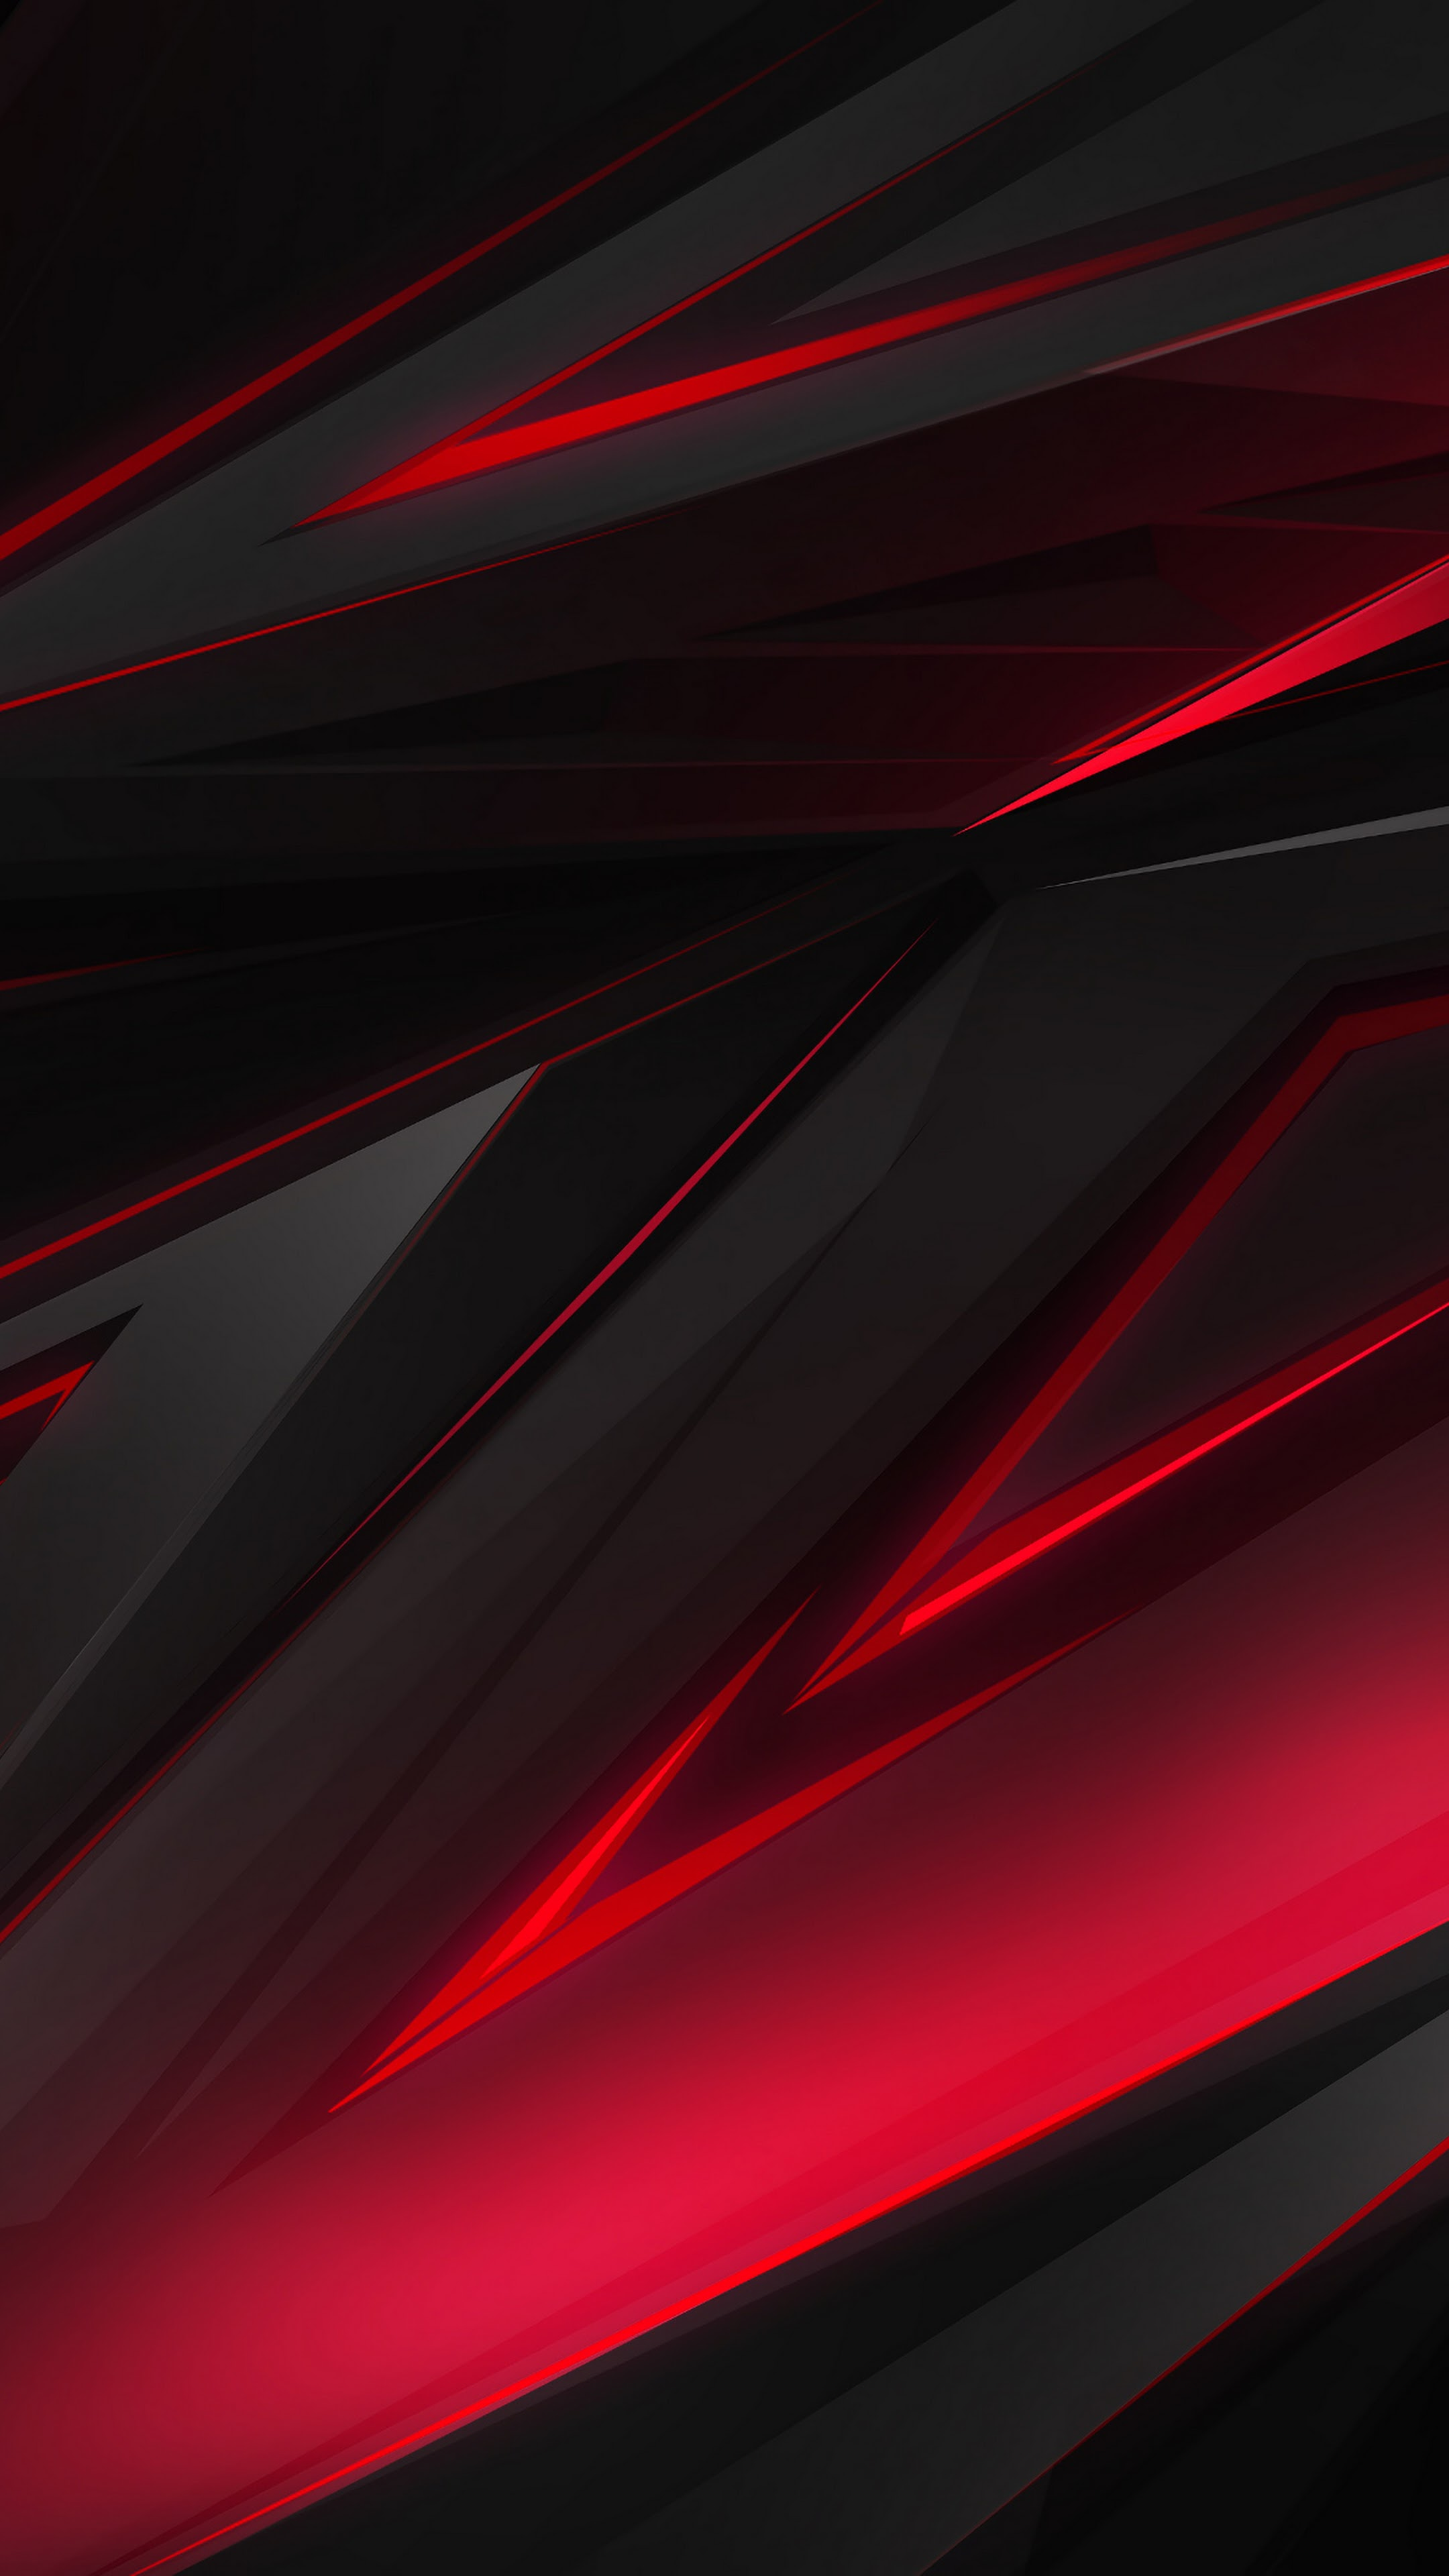 Black Red Abstract Polygon 3d 4k Iphone 11 Wallpaper Red 2160x3840 Wallpaper Teahub Io